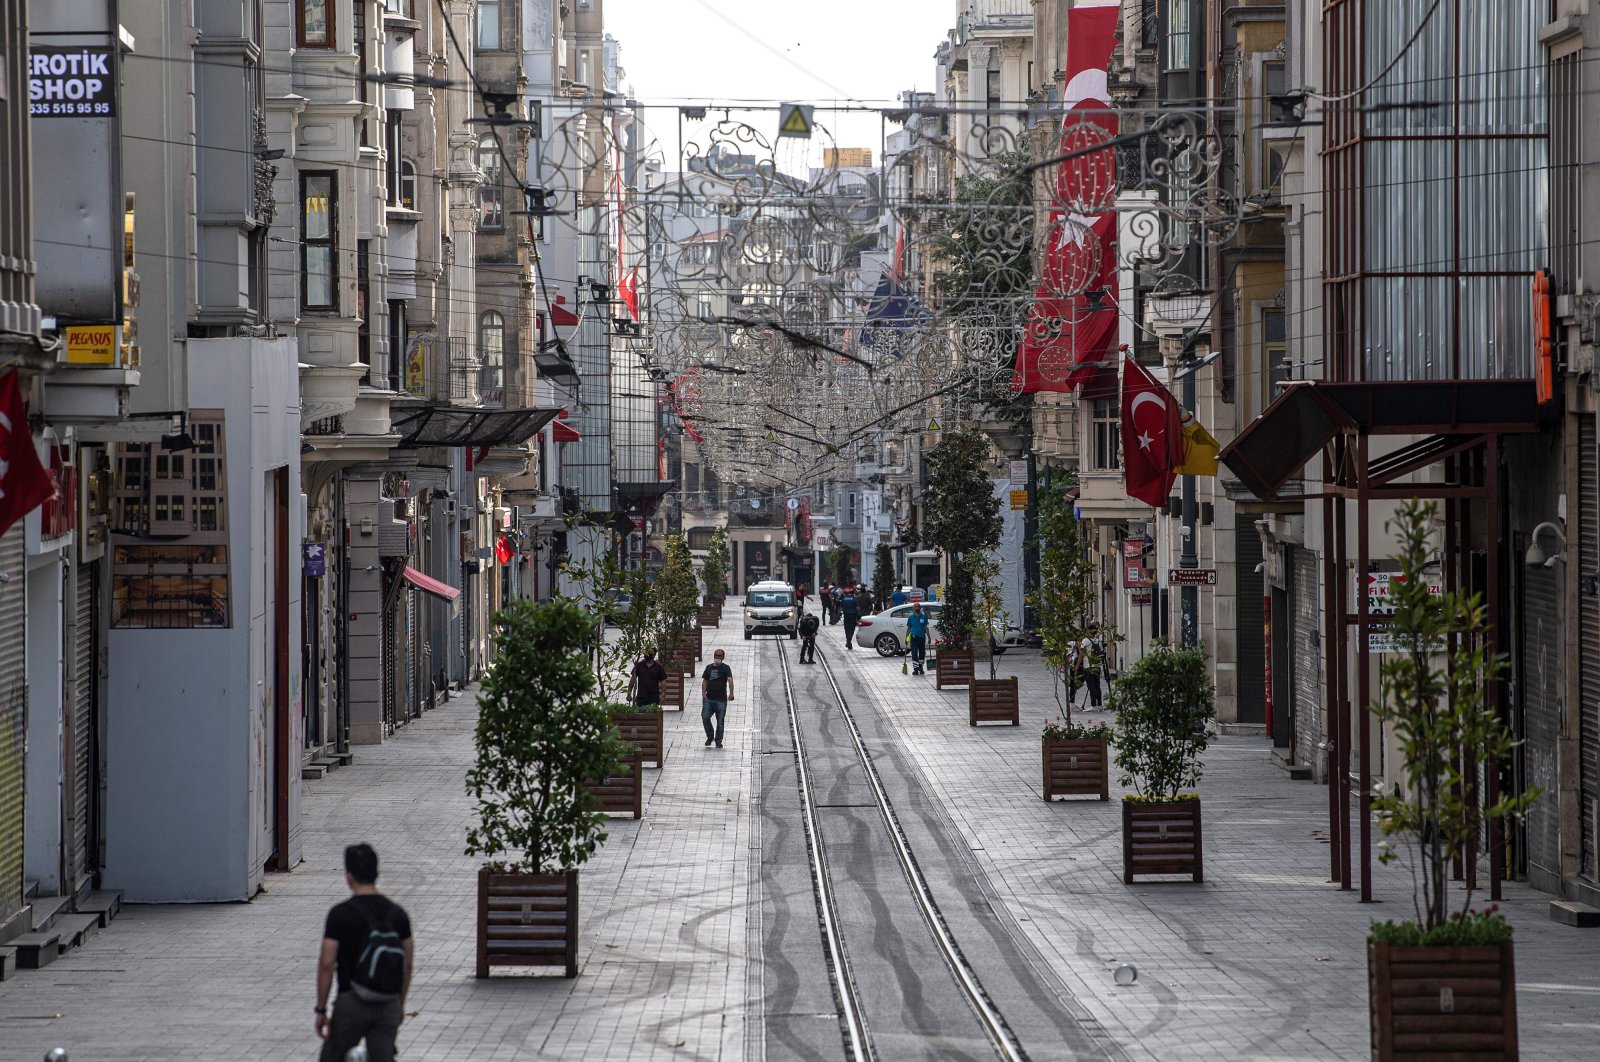 People walk along a deserted Istiklal Avenue in the Taksim district of Istanbul, Turkey, during a four-day curfew to prevent the spread of the COVID-19 pandemic, May 16, 2020. (AFP Photo)